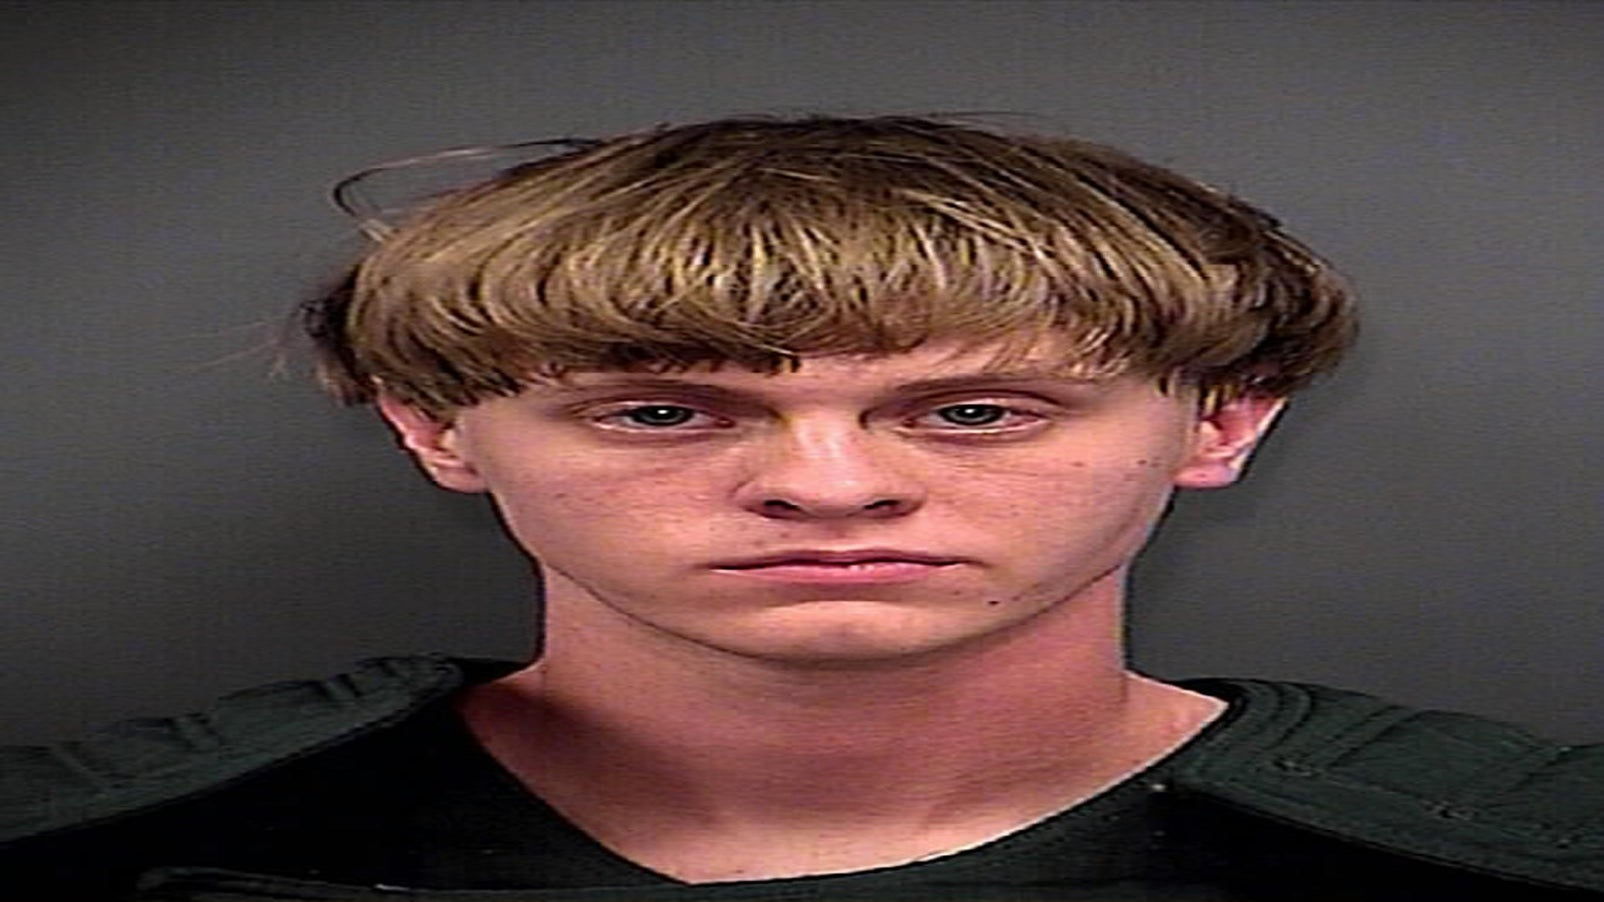 The Justice Department Will Seek The Death Penalty for Charleston Church Shooter Dylann Roof